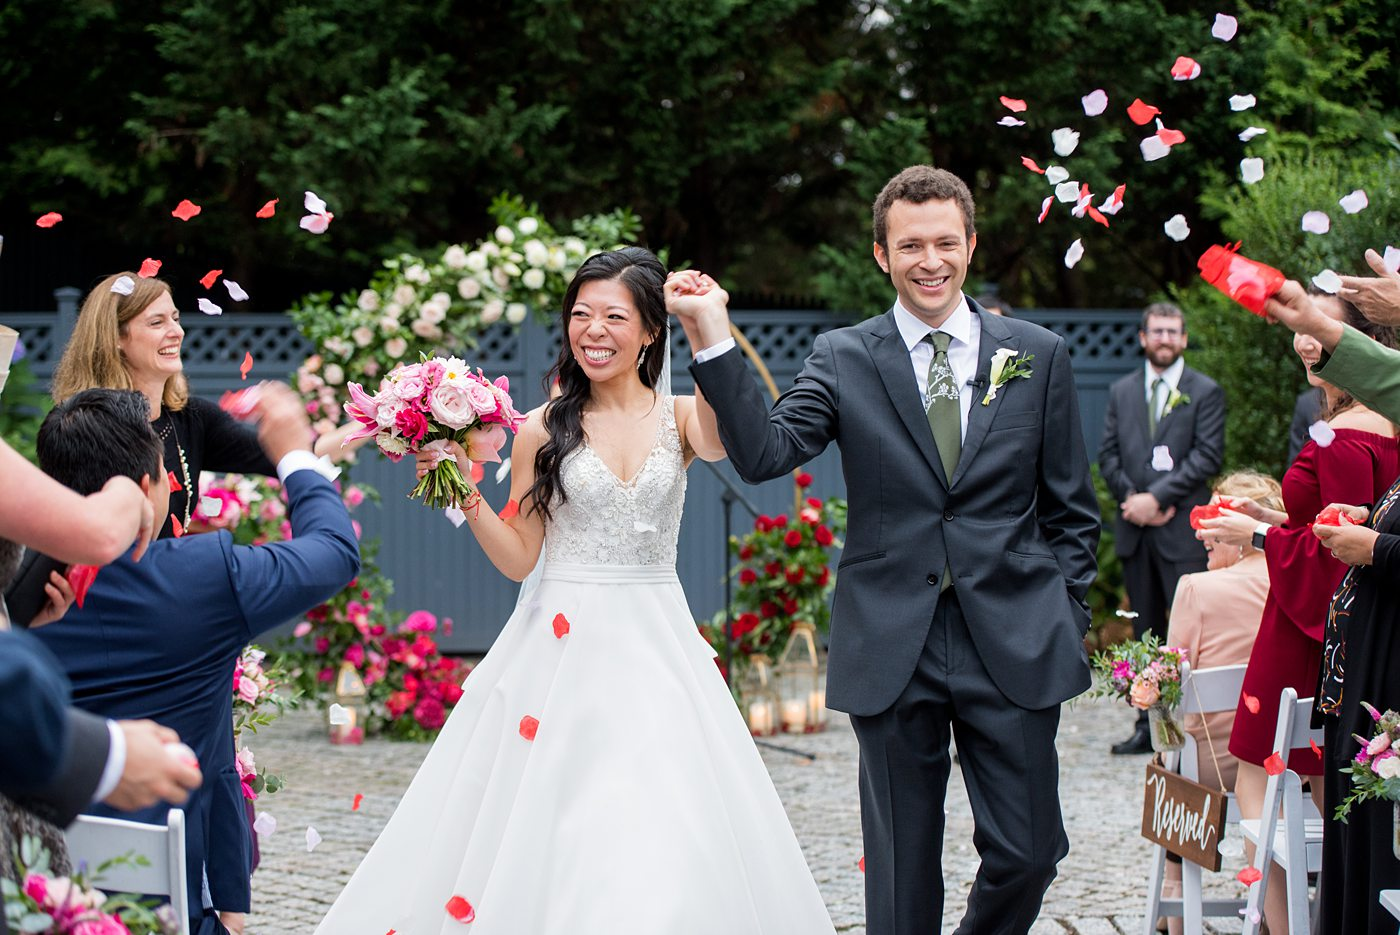 Outdoor ceremony at a New York Botanical Garden wedding photos by Mikkel Paige Photography. After the couple's engagement photoshoot in Manhattan I was so excited for their fall wedding near the Conservatory at the Terrace Room, at this NYC venue. Their backdrop was an ombre flower circle with pink and red blooms. #mikkelpaige #nybg #newyorkbotanicalgardenwedding #asianbride #NYBotanicalGarden #Bronxwedding #newyorkcityweddingvenues #weddingceremony #ombreflowers #tietheknot